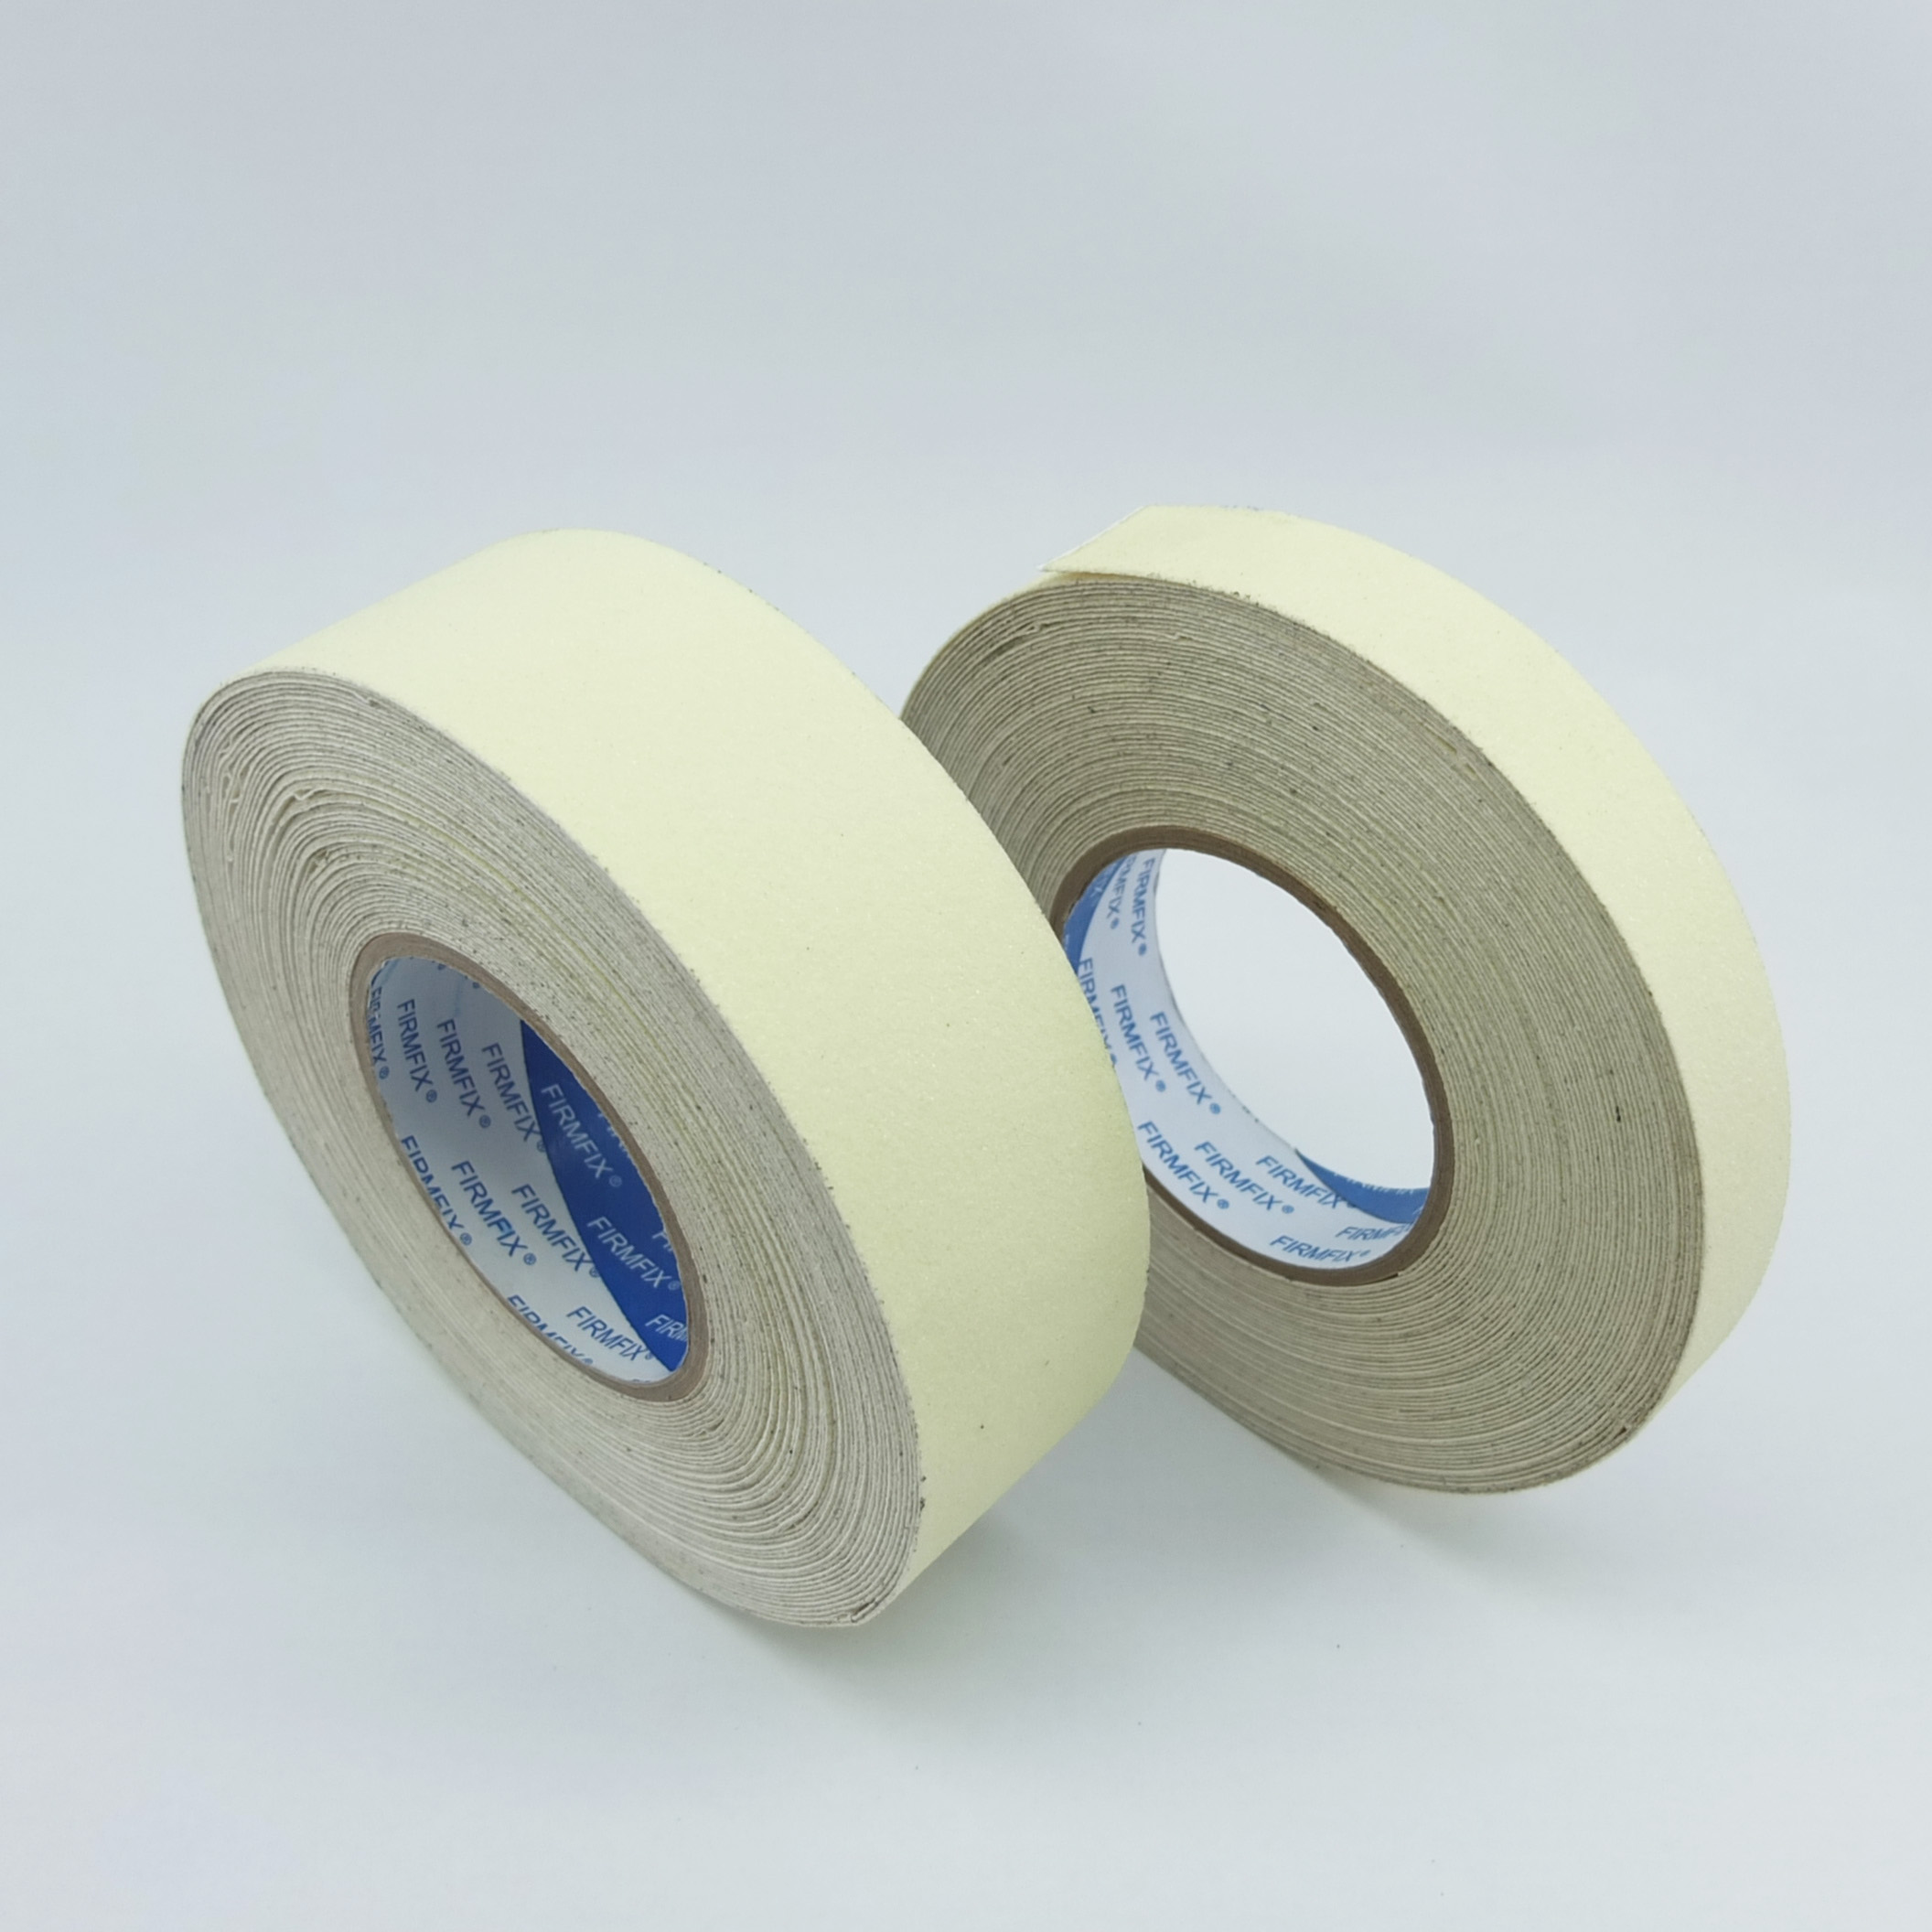 FIRMFIX Anti-slip Tape – Luminous